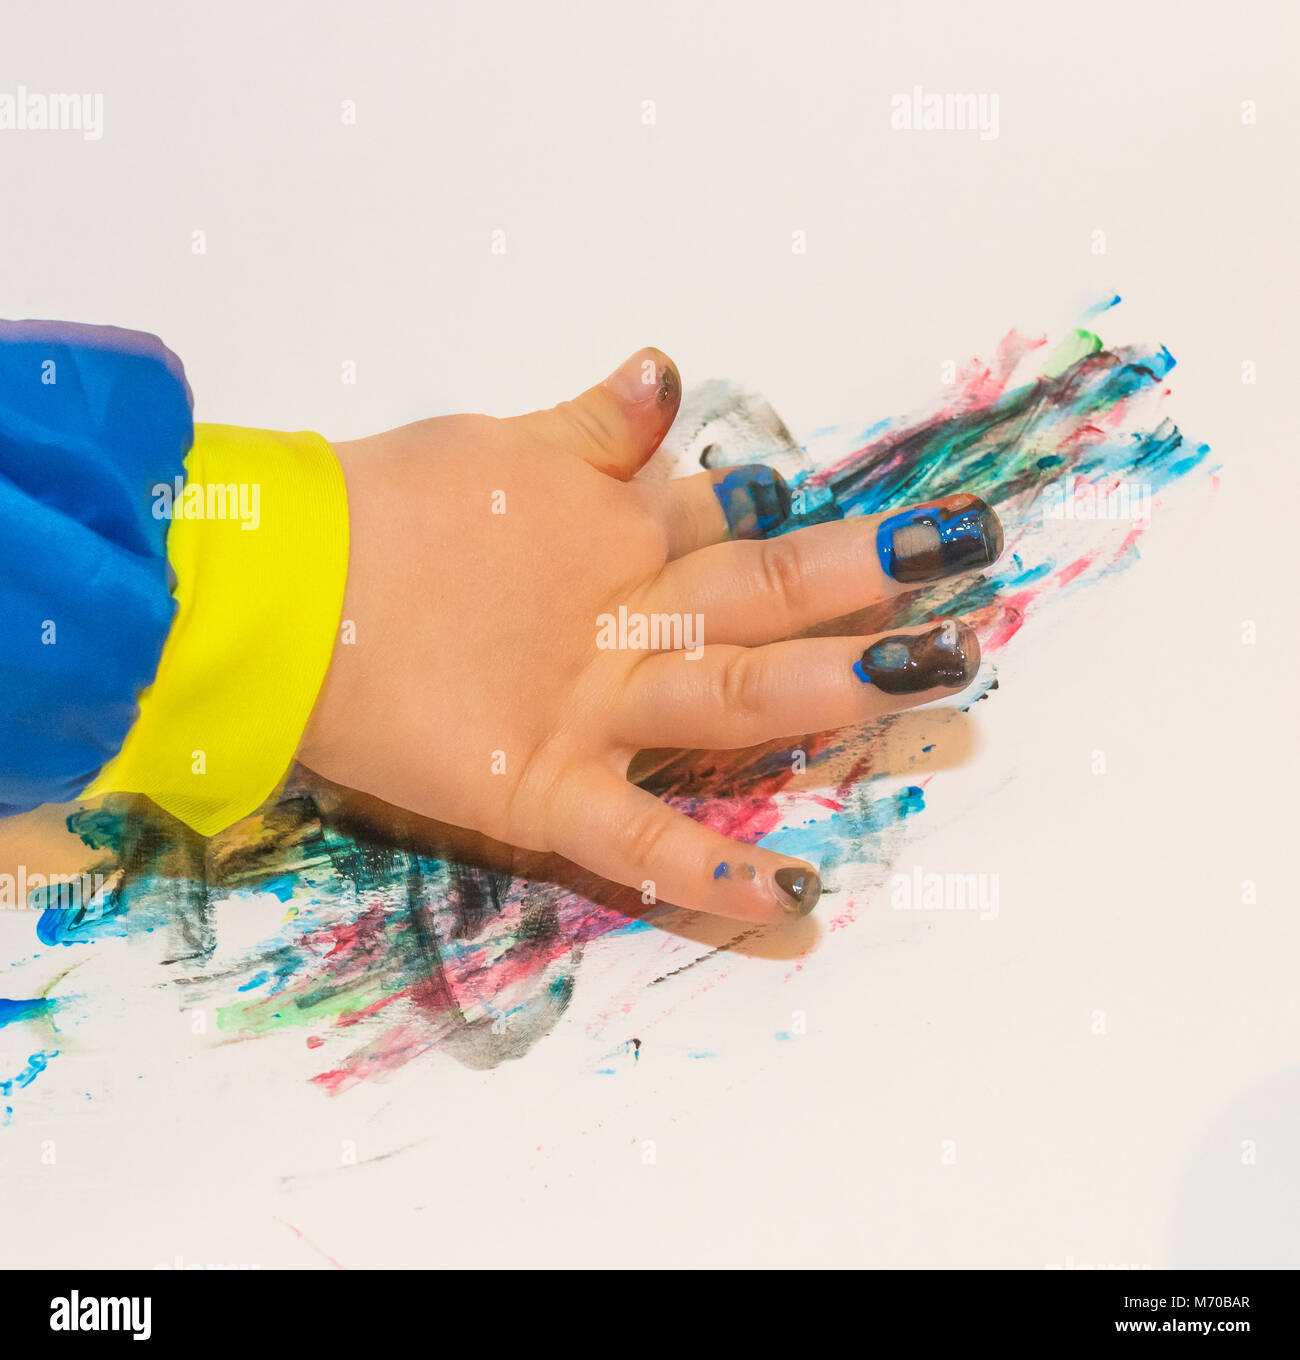 Child hand painted in colorful paits. Education, school, creativity and painting concept. Soft focus an blurry - Stock Image